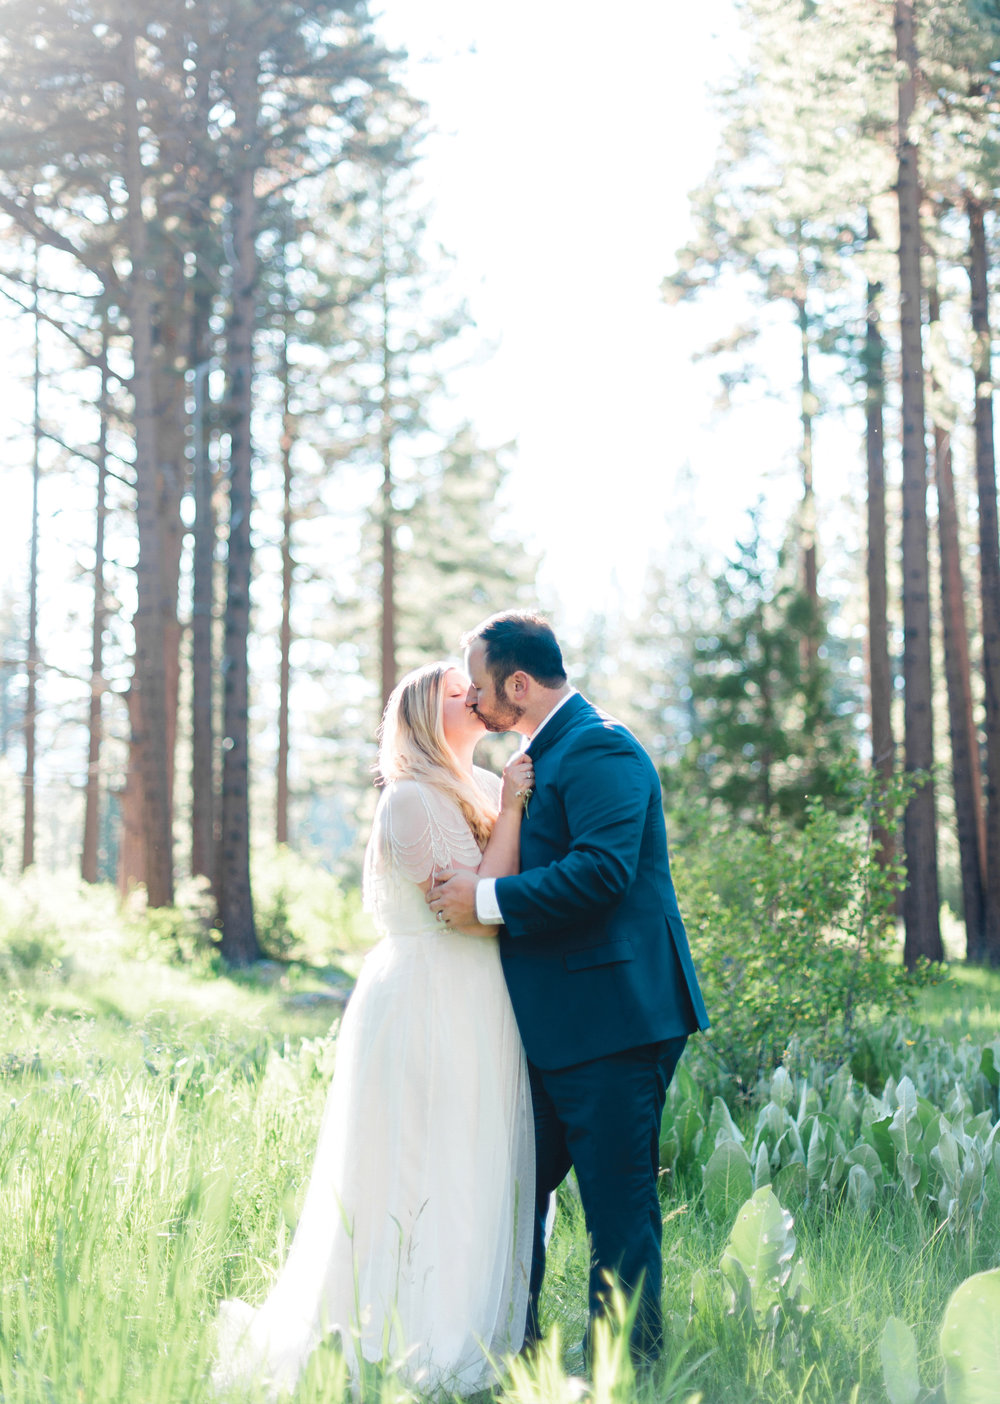 / WELCOME / - We are so happy you are here. We are lovers of light, and specialize in wedding and lifestyle photography locally here in Charlotte, North Carolina.